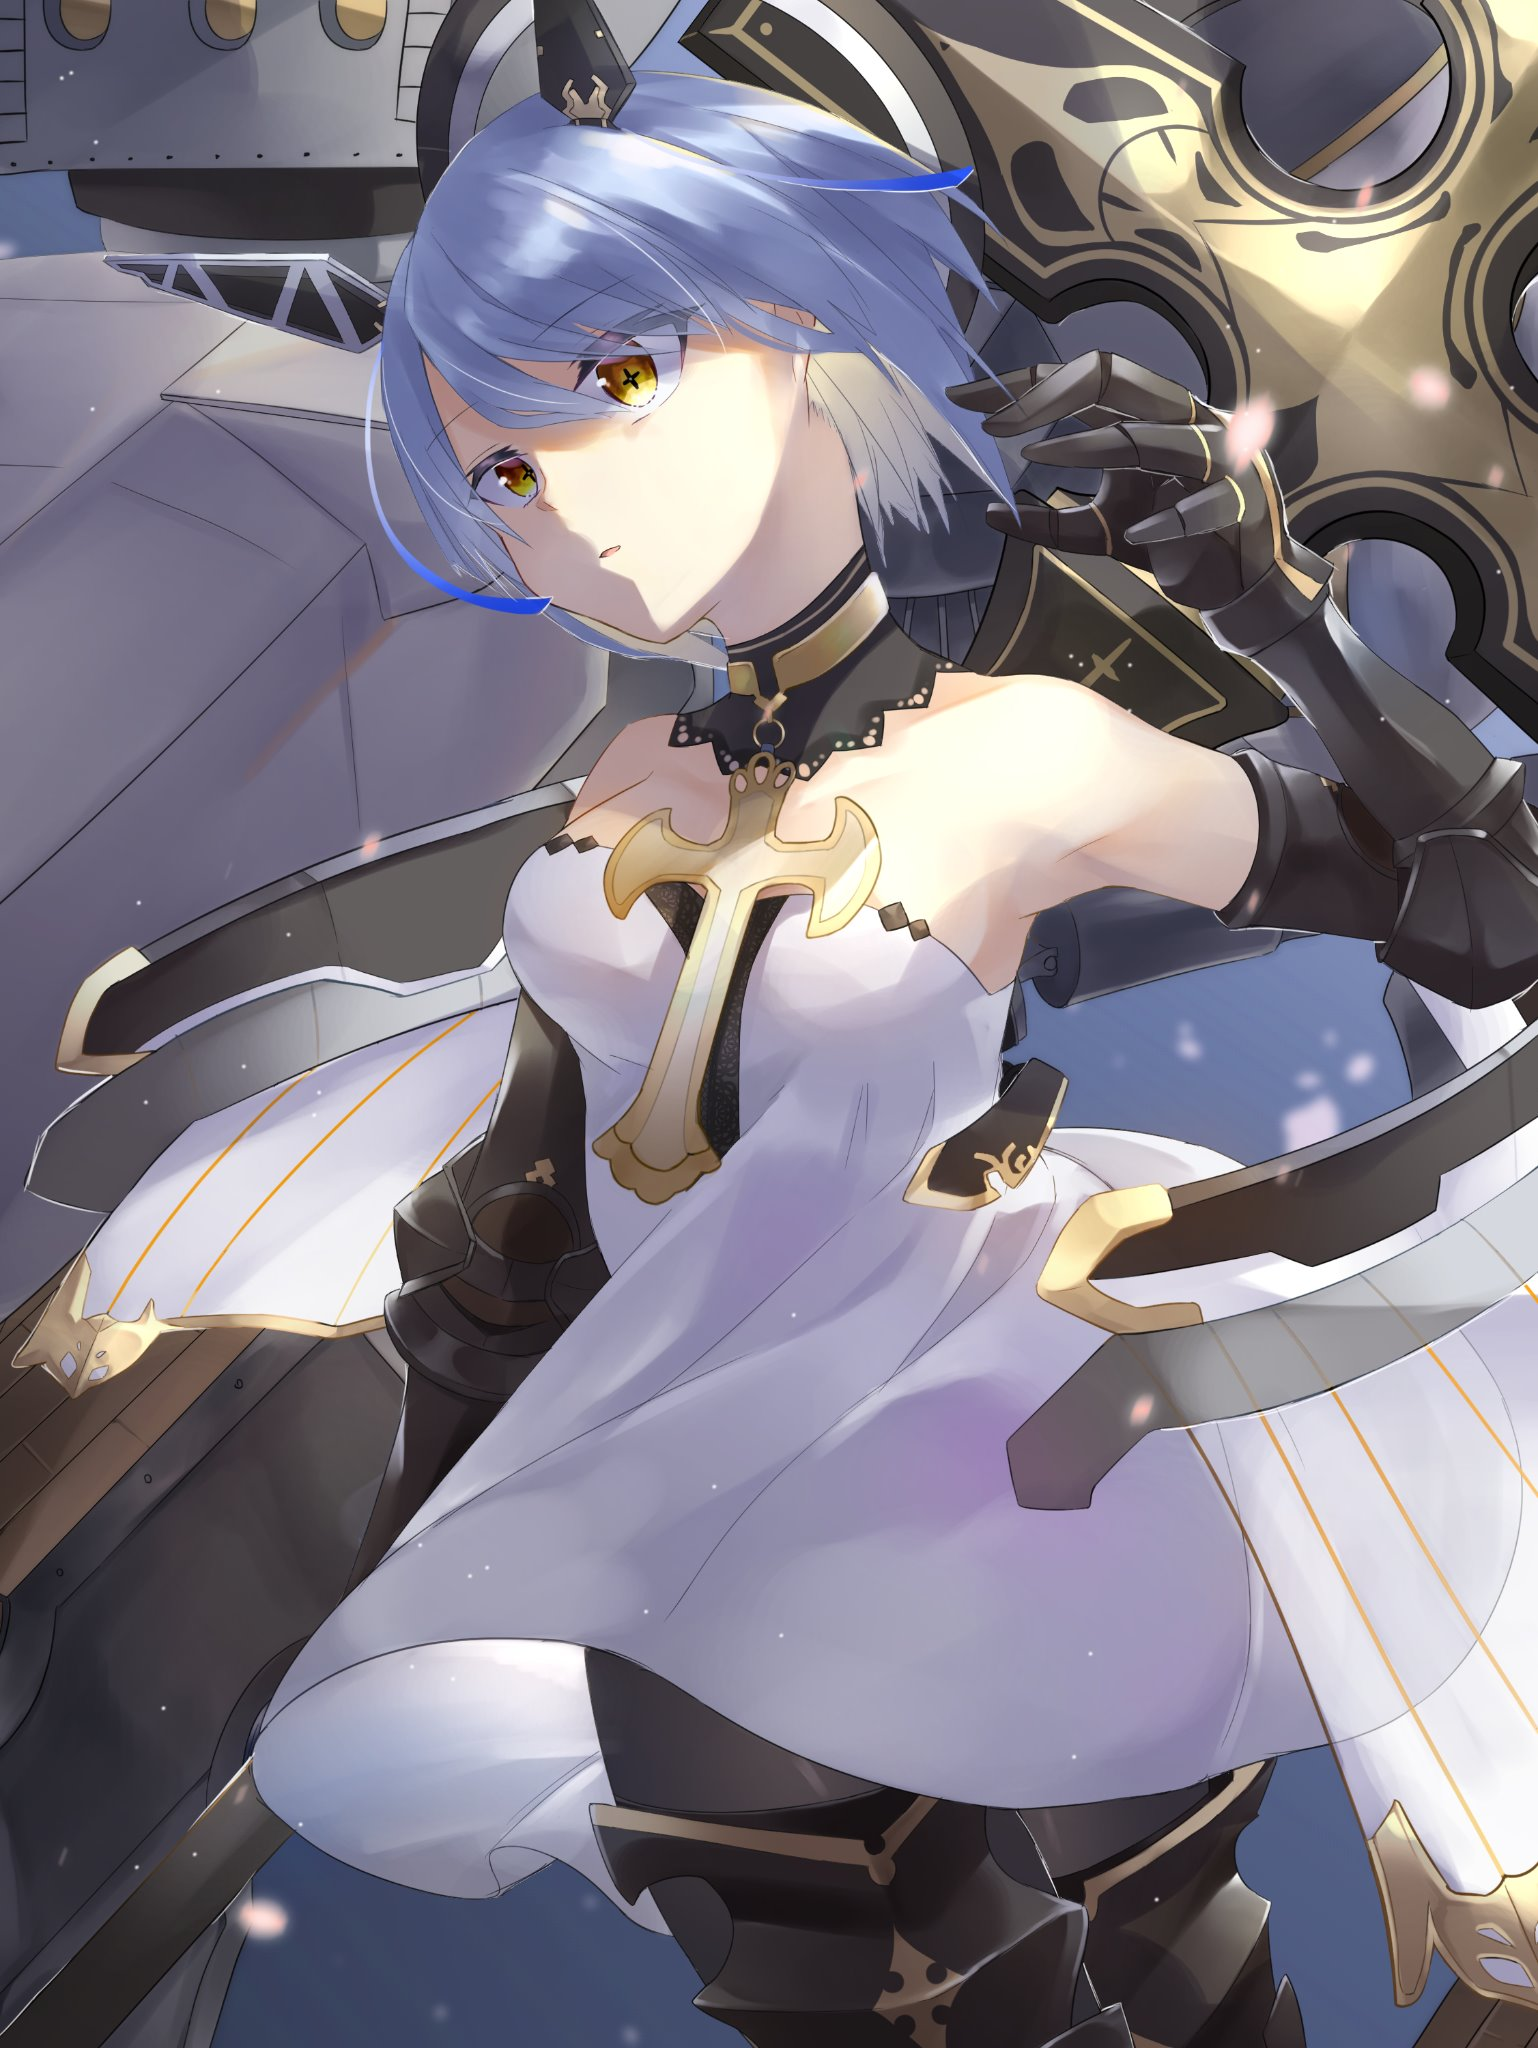 Anime 1538x2048 anime anime girls vertical portrait display short hair blue hair yellow eyes armor lance Azur Lane digital art